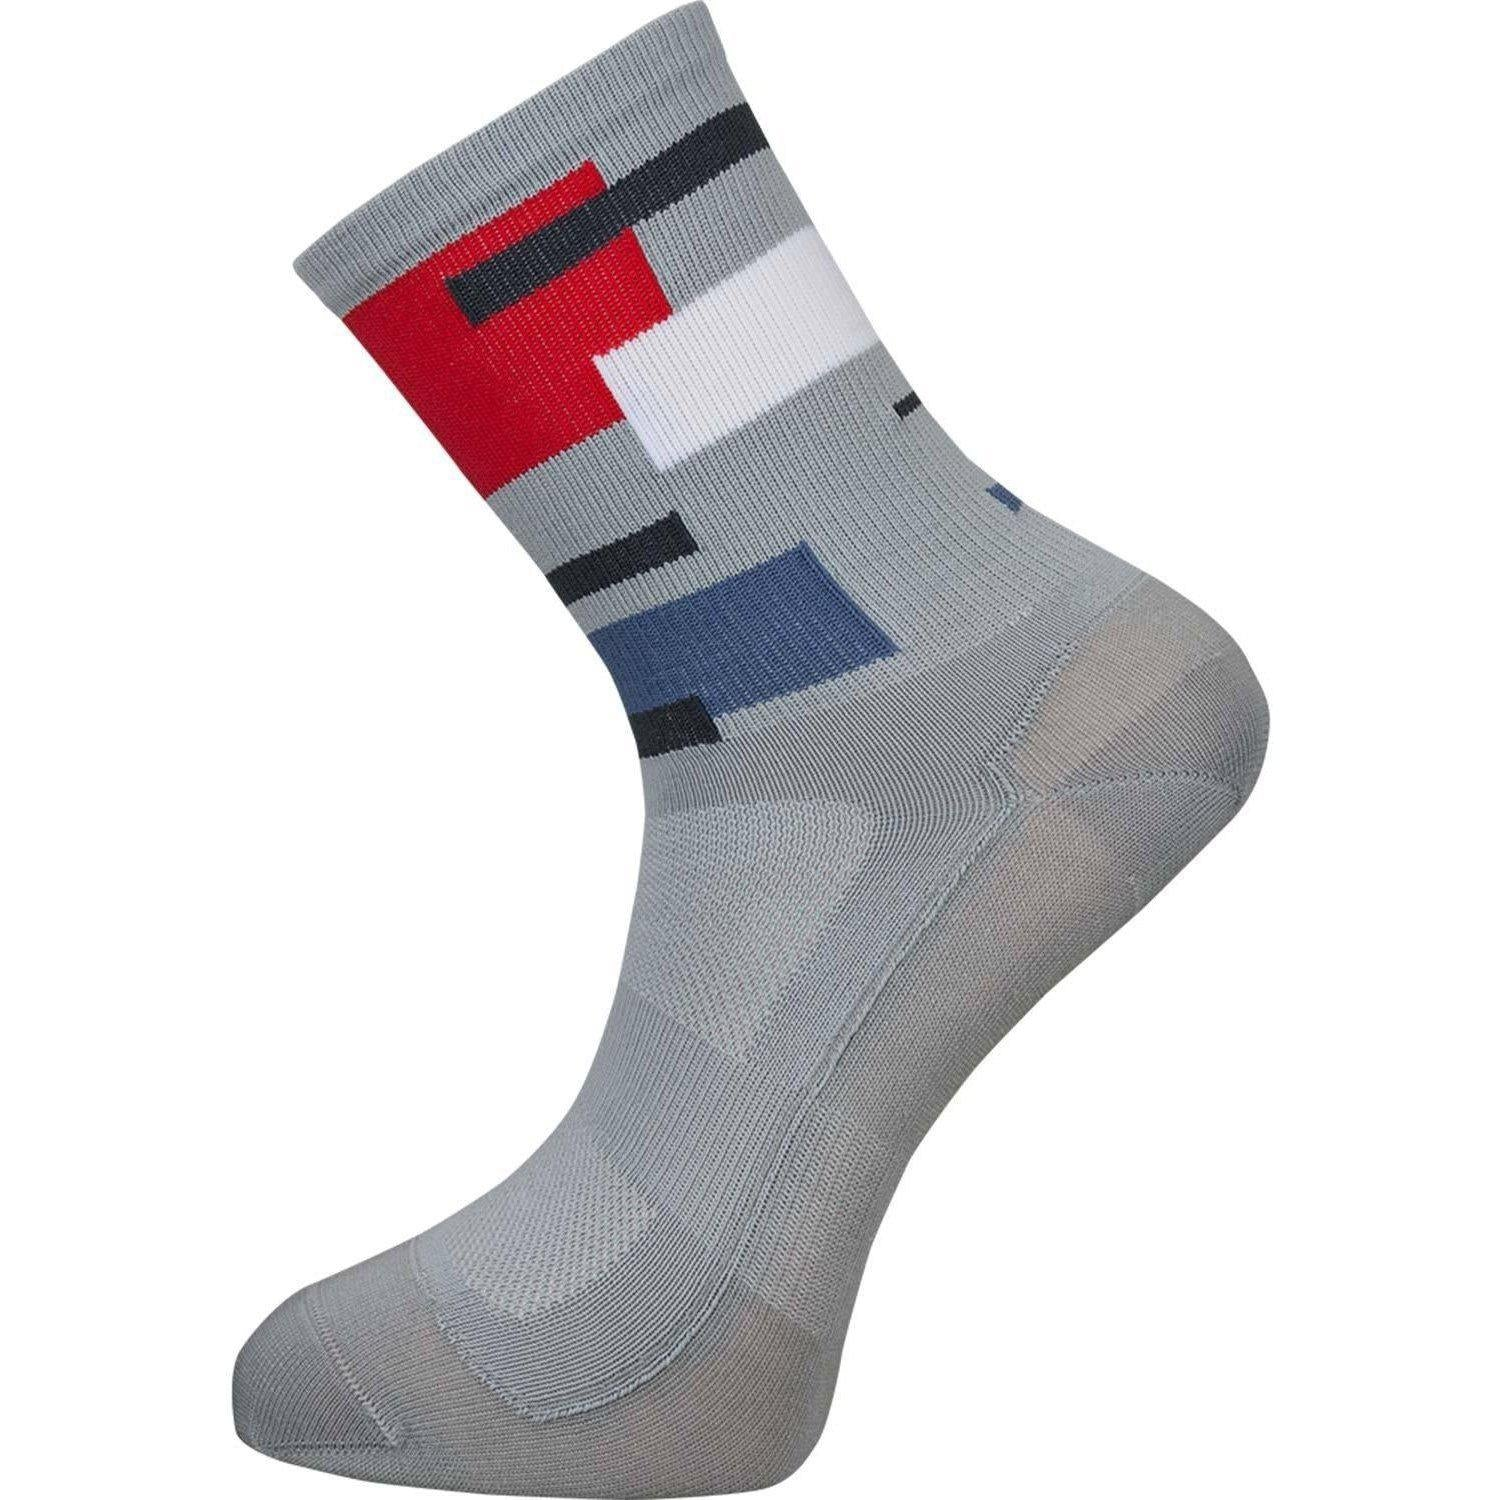 Chpt3-Chpt3 Vuelta 1.51 Socks--saddleback-elite-performance-cycling